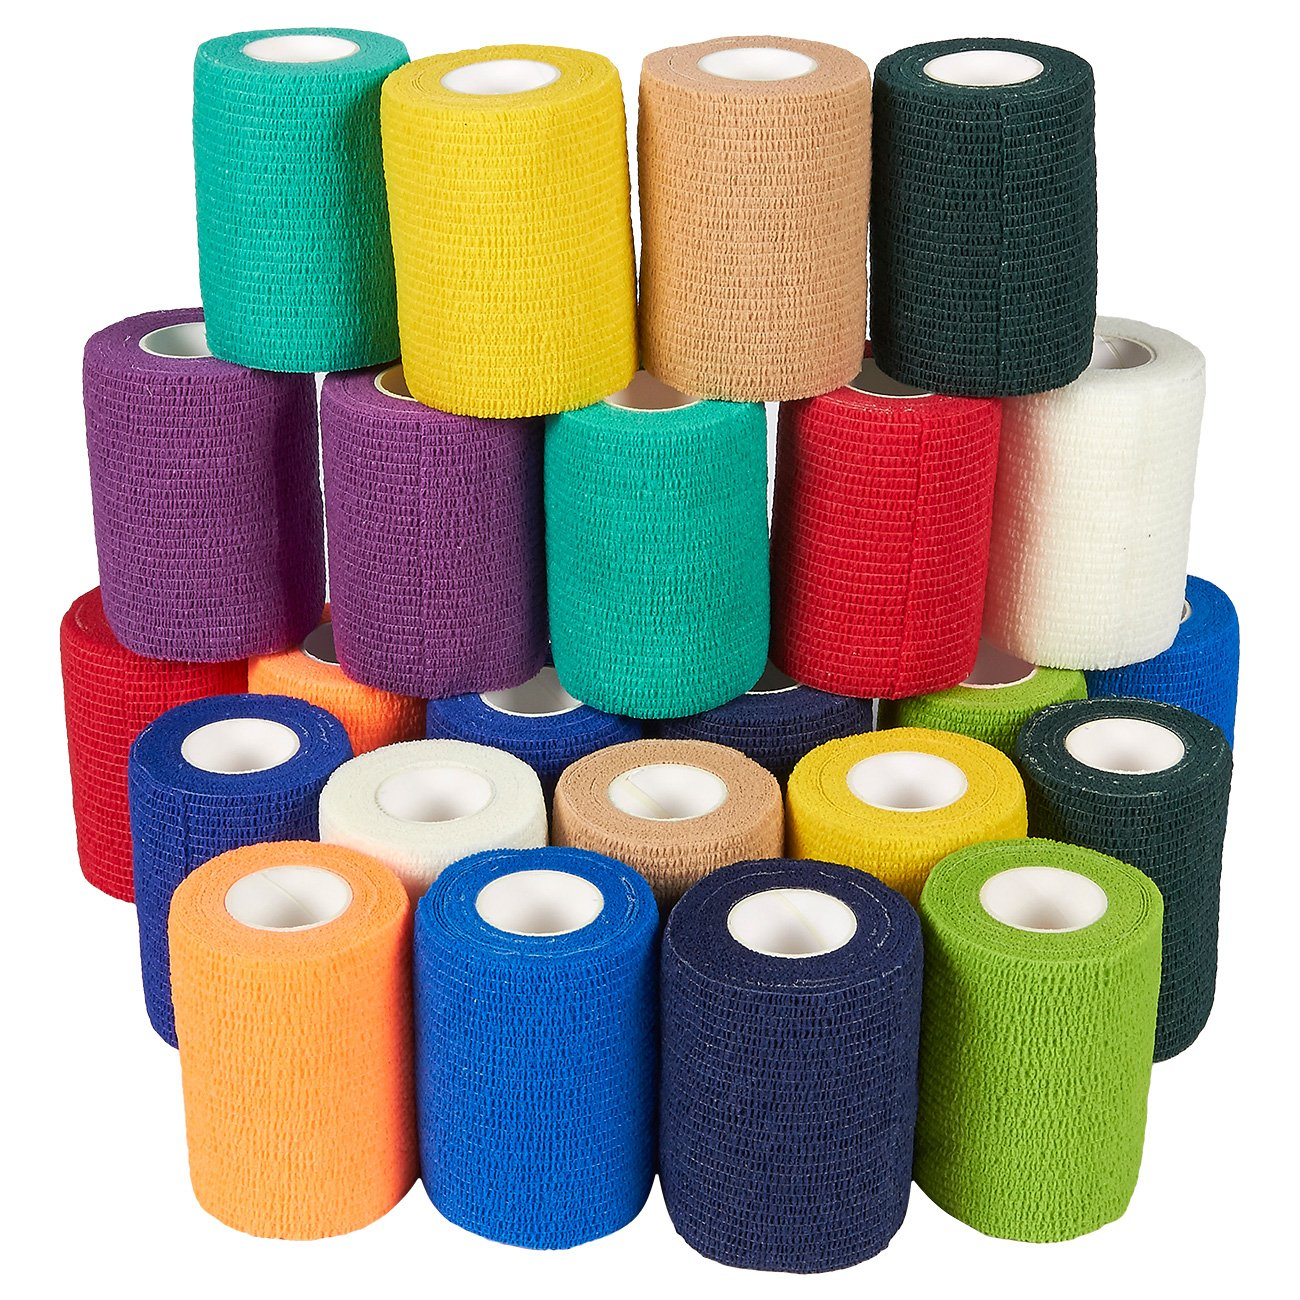 Self Adherent Wrap - 24 Pack of Cohesive Bandage Medical Vet Tape for First Aid, Sports, Wrist, Ankle in 12 Colors with 2 Rolls Each, 3 Inches x 5 Yards by Juvale